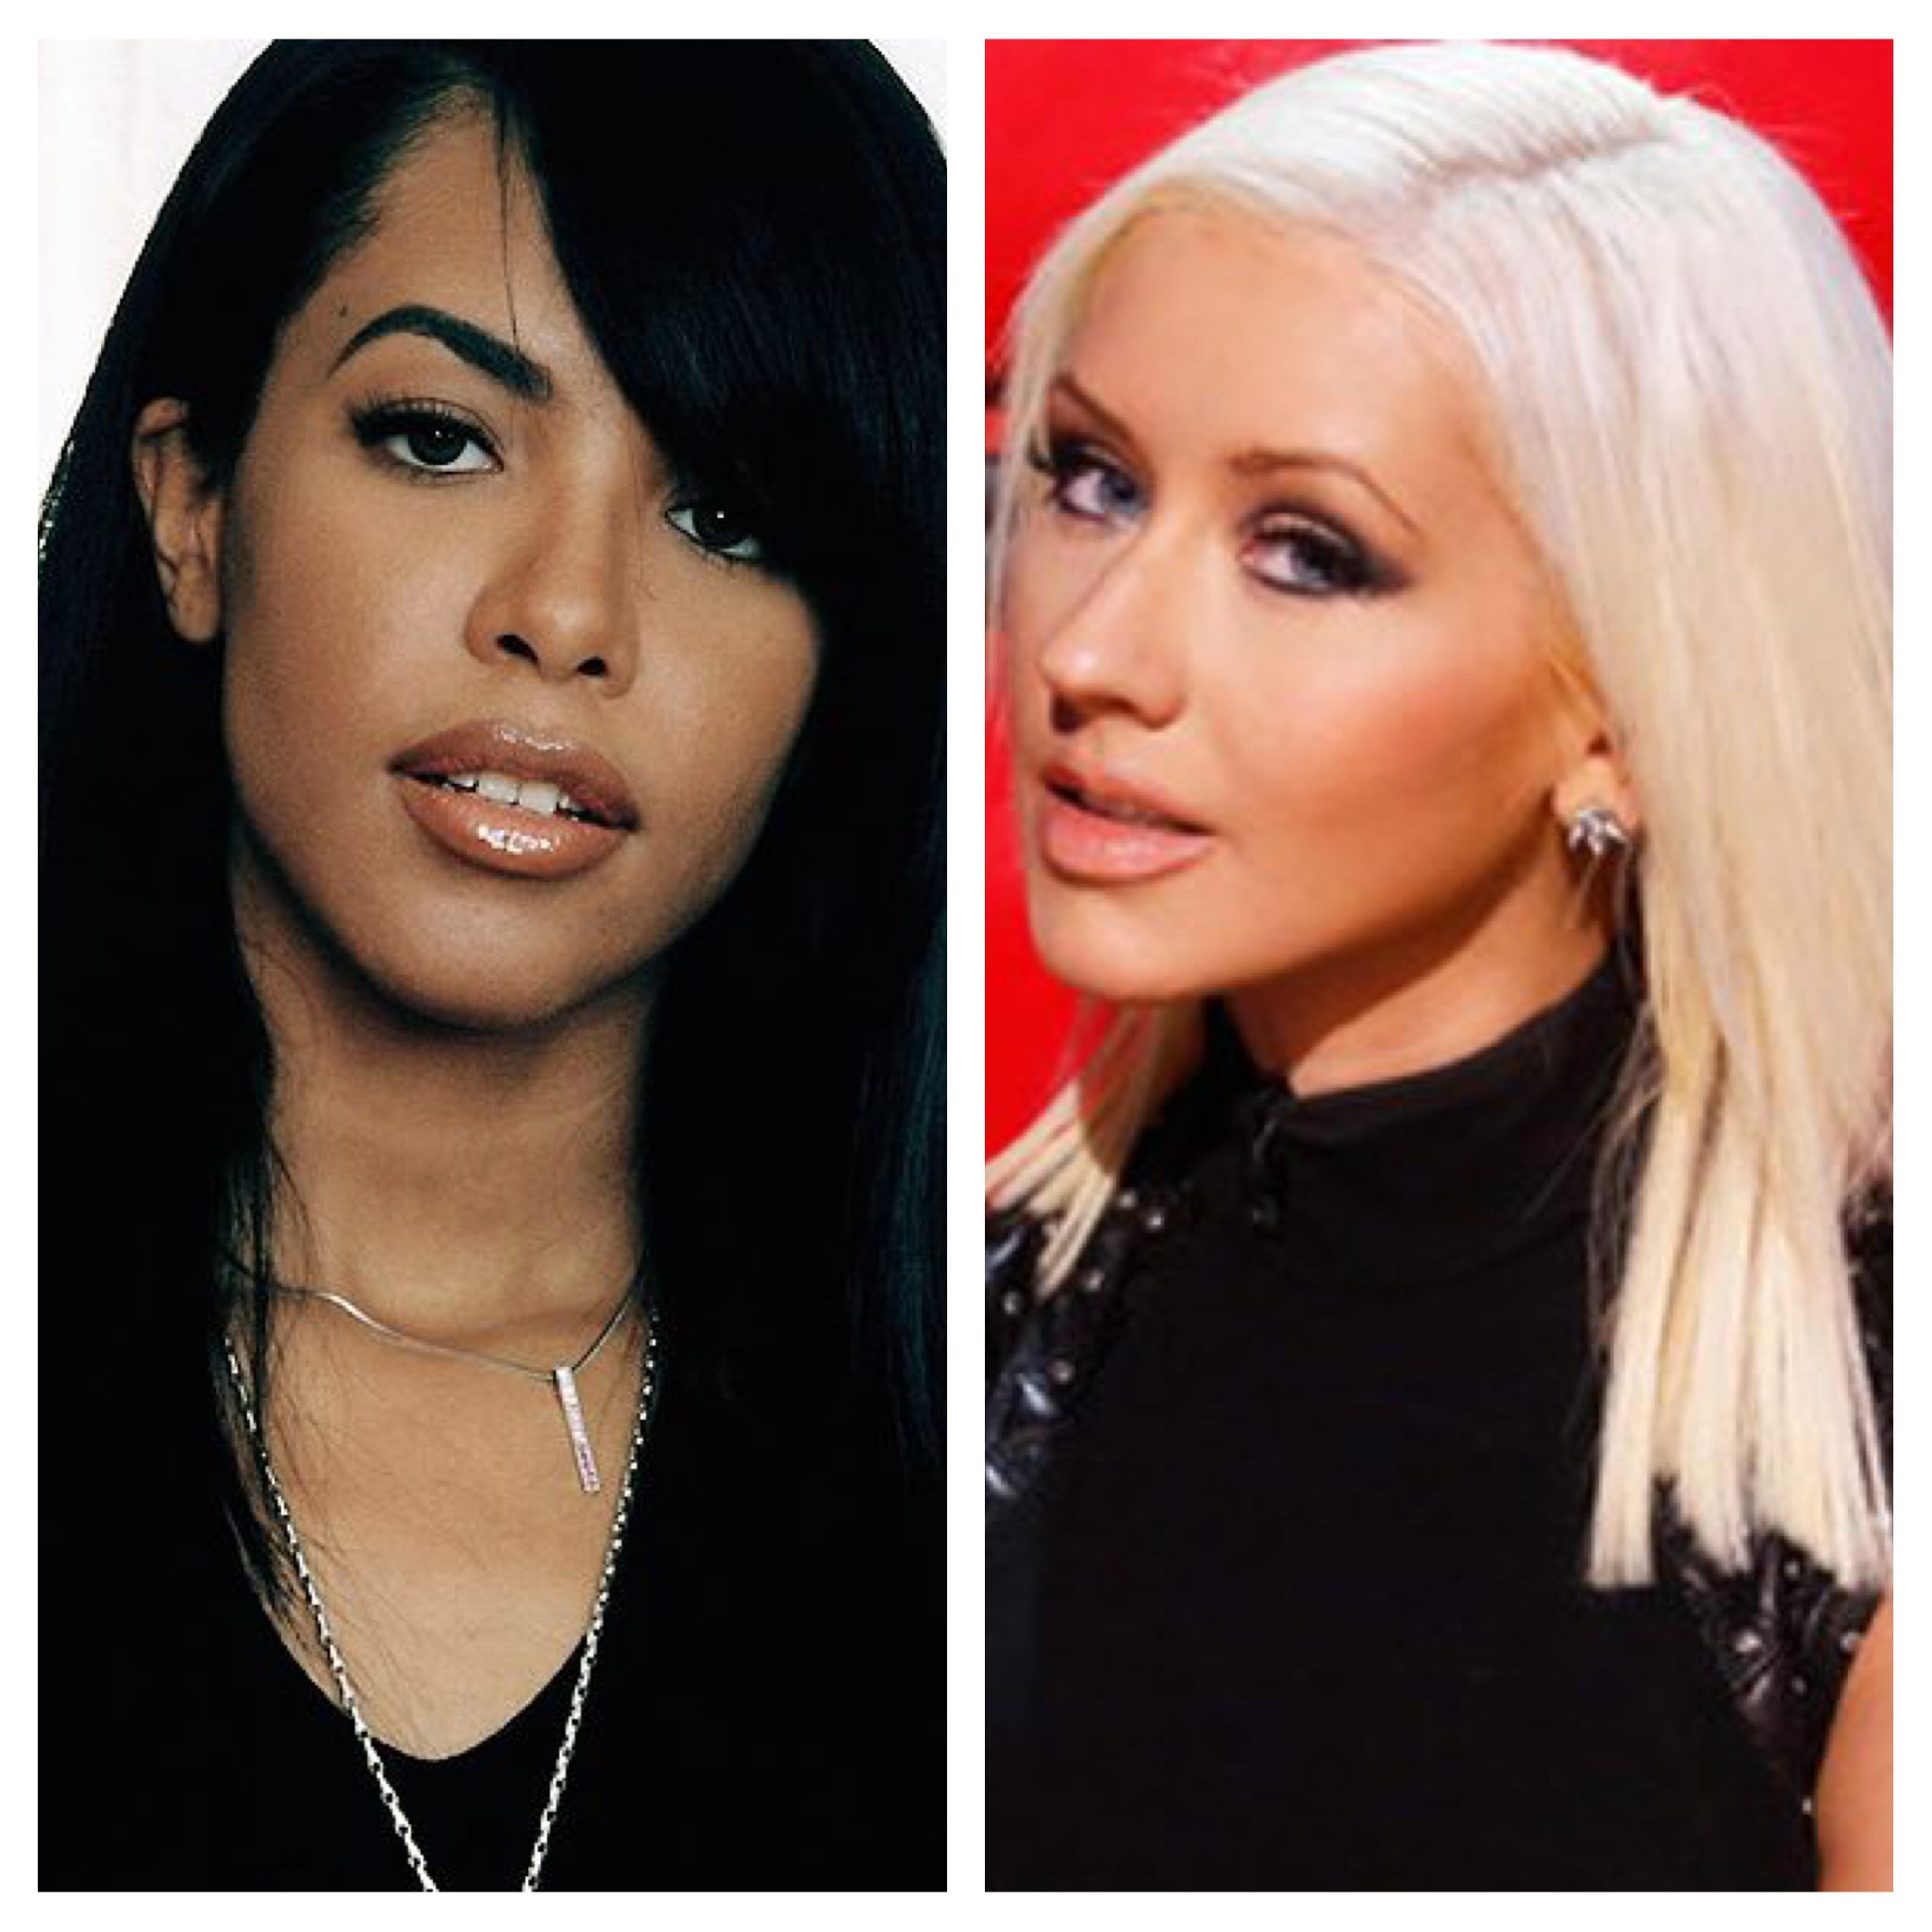 Tunes Tuesday 6.6 – Motivation by Aaliyah & Christina Aguilera